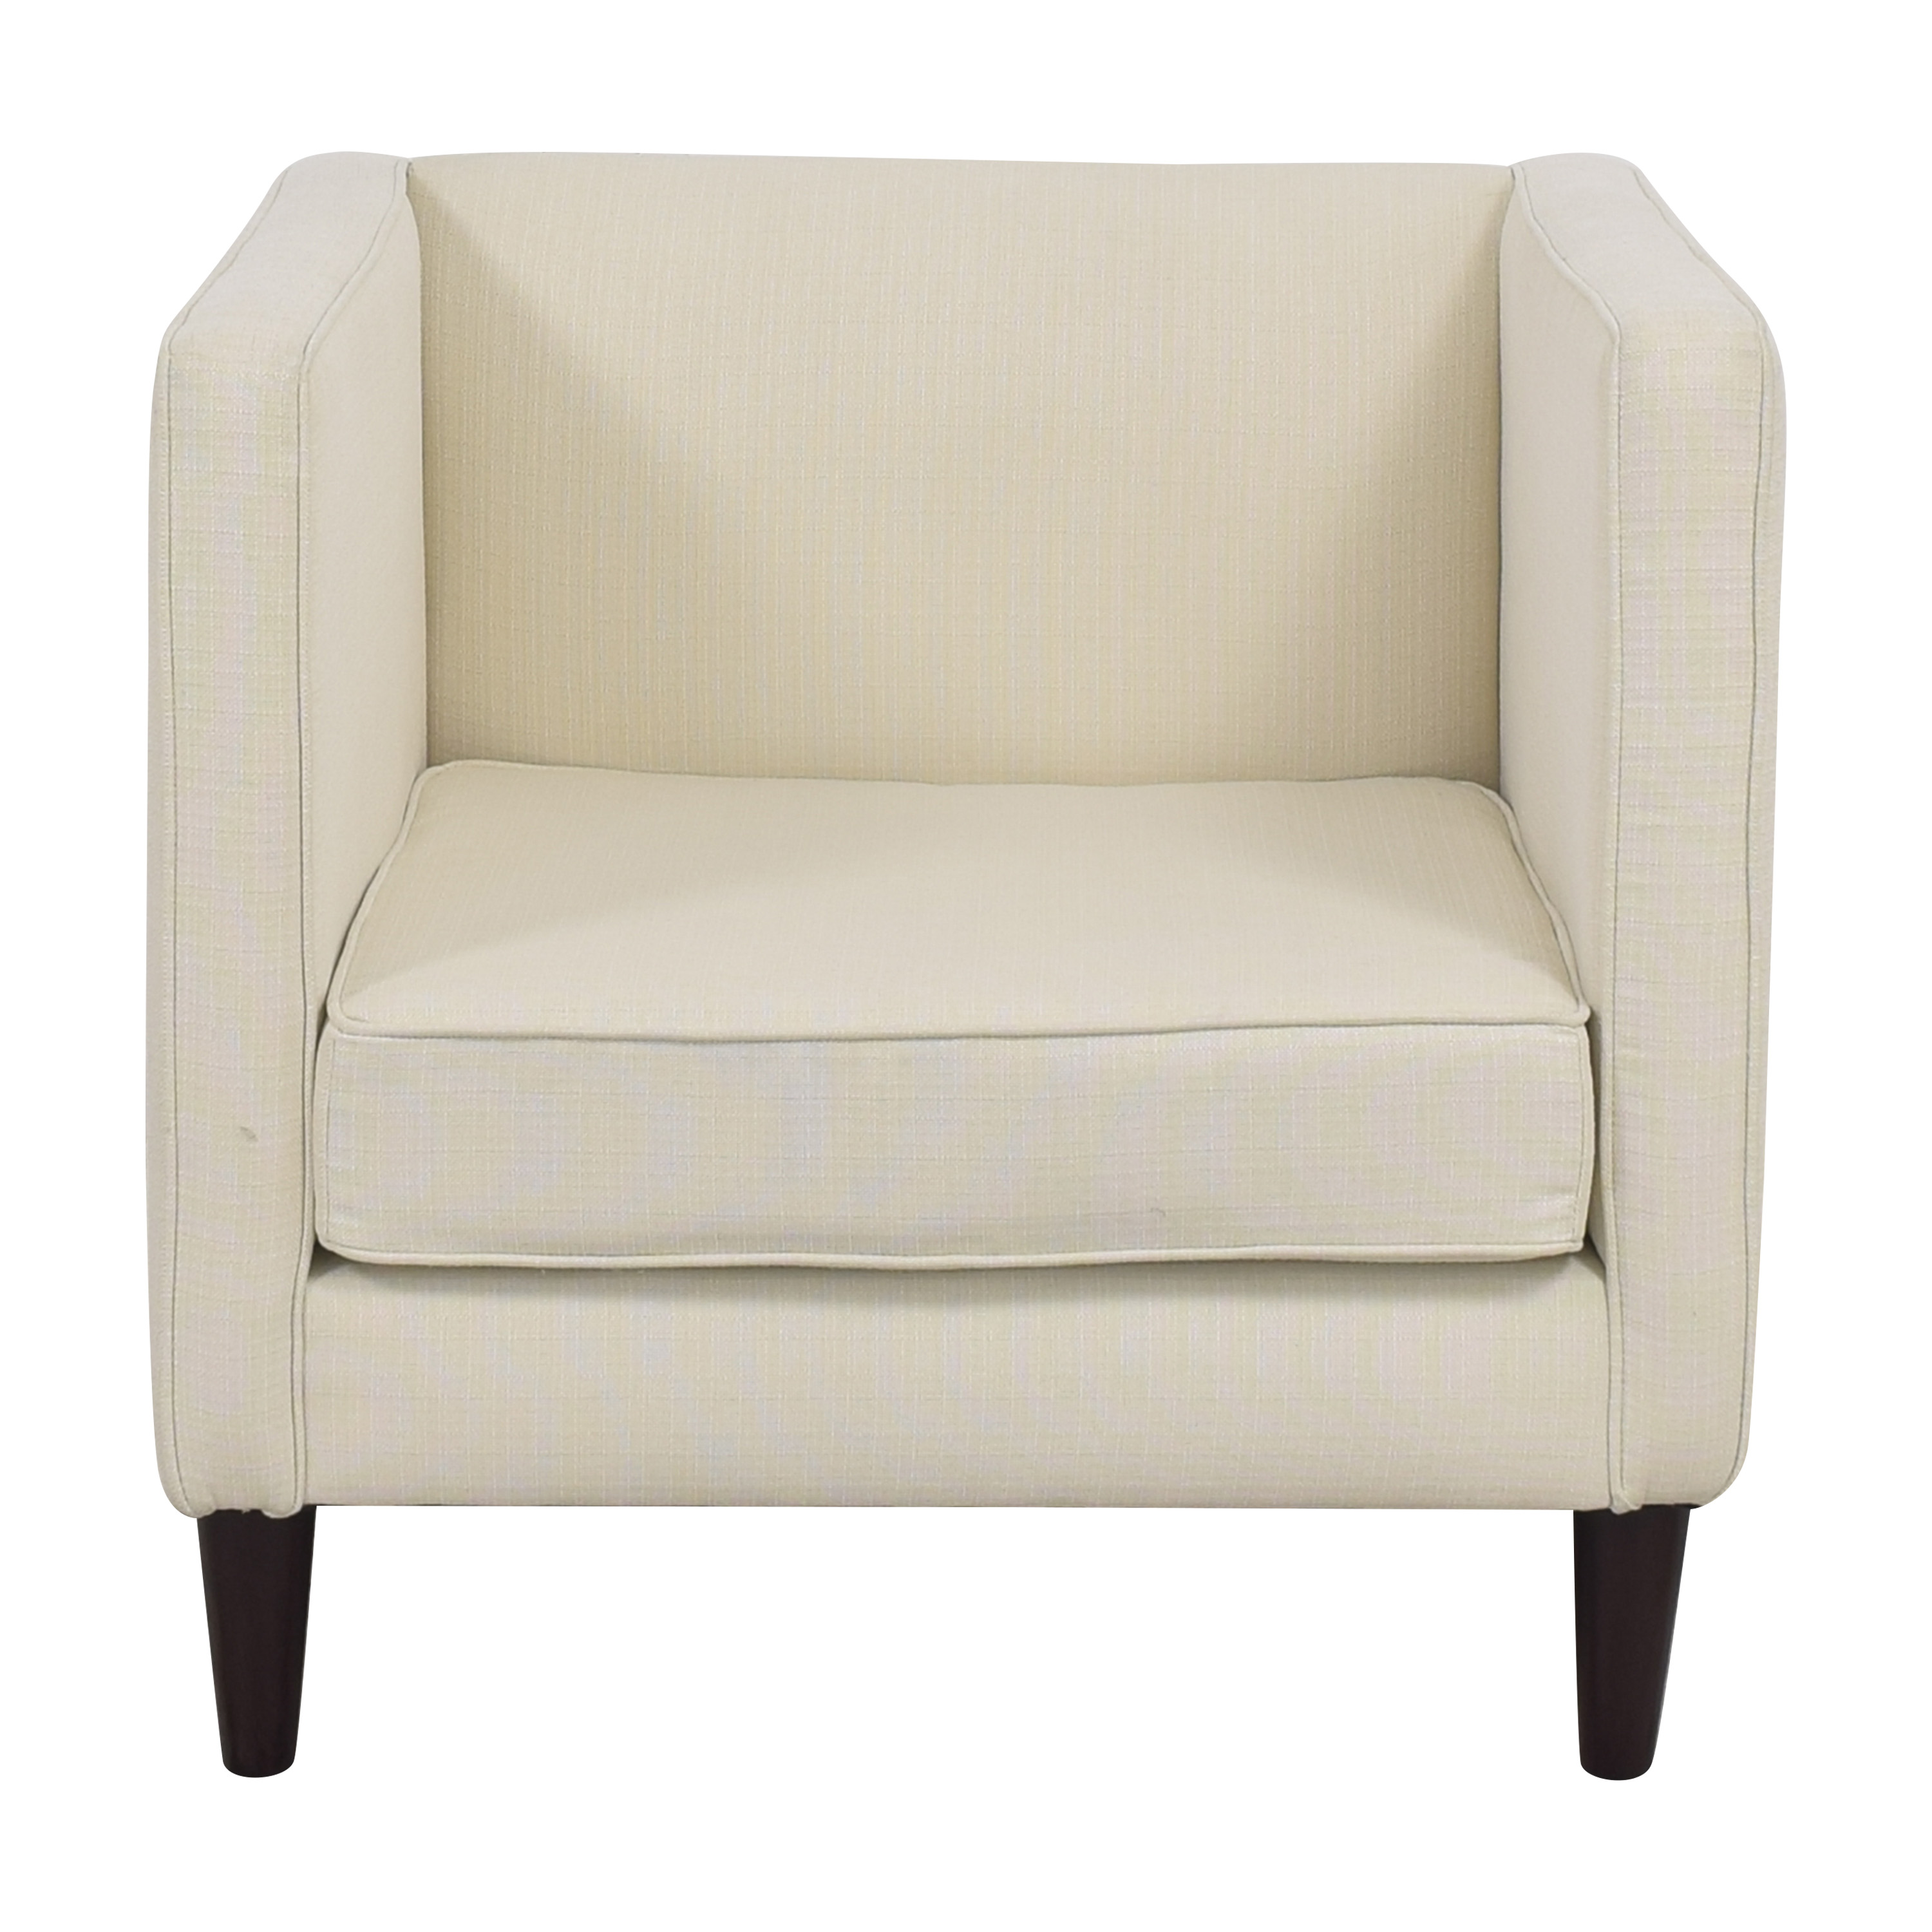 shop The Inside Tuxedo Chair The Inside Chairs